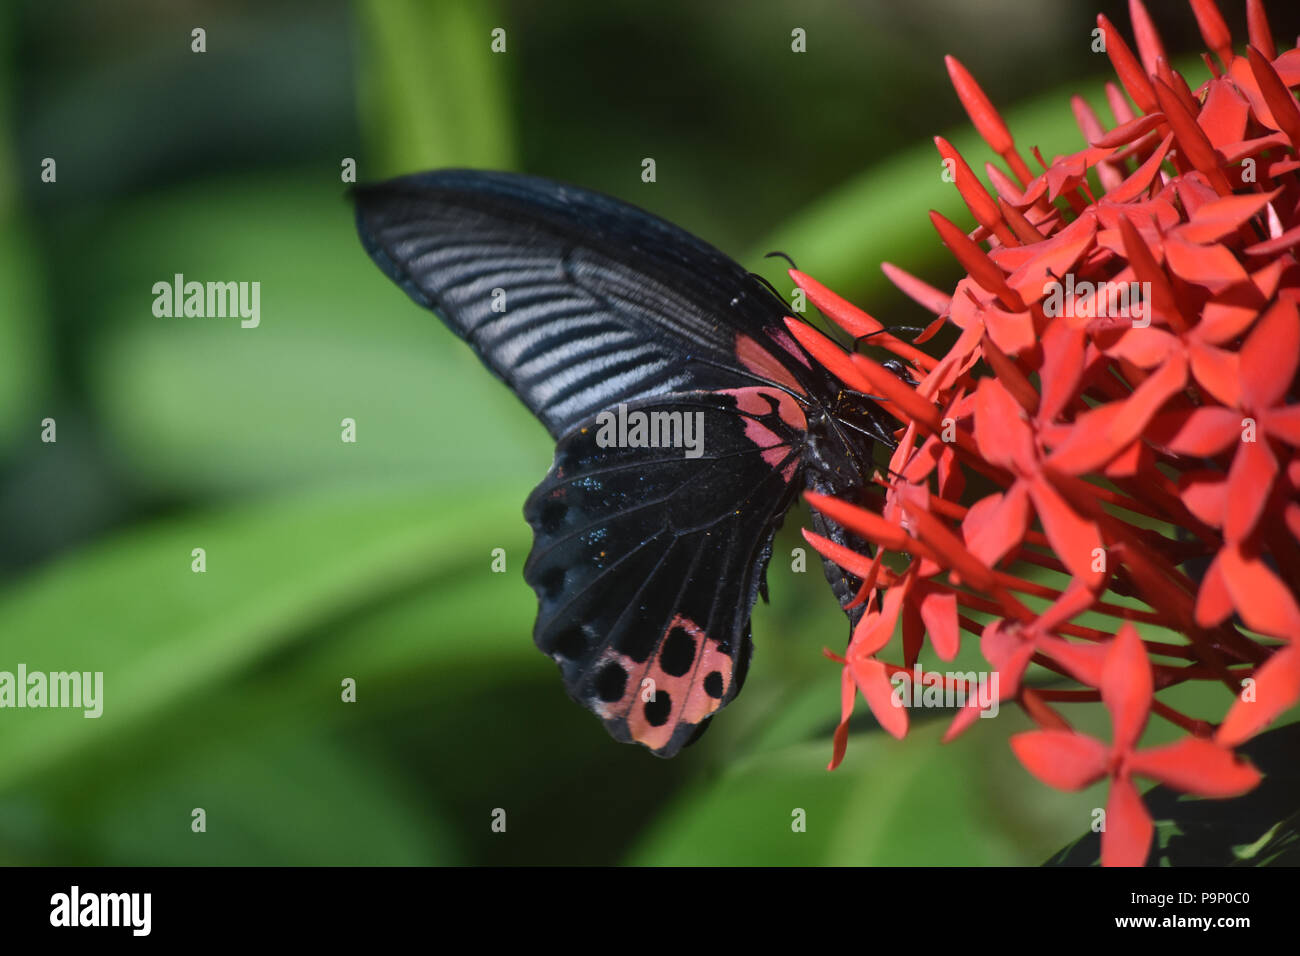 Scarlet swallowtail butterfly with distinctive red and black markings. - Stock Image